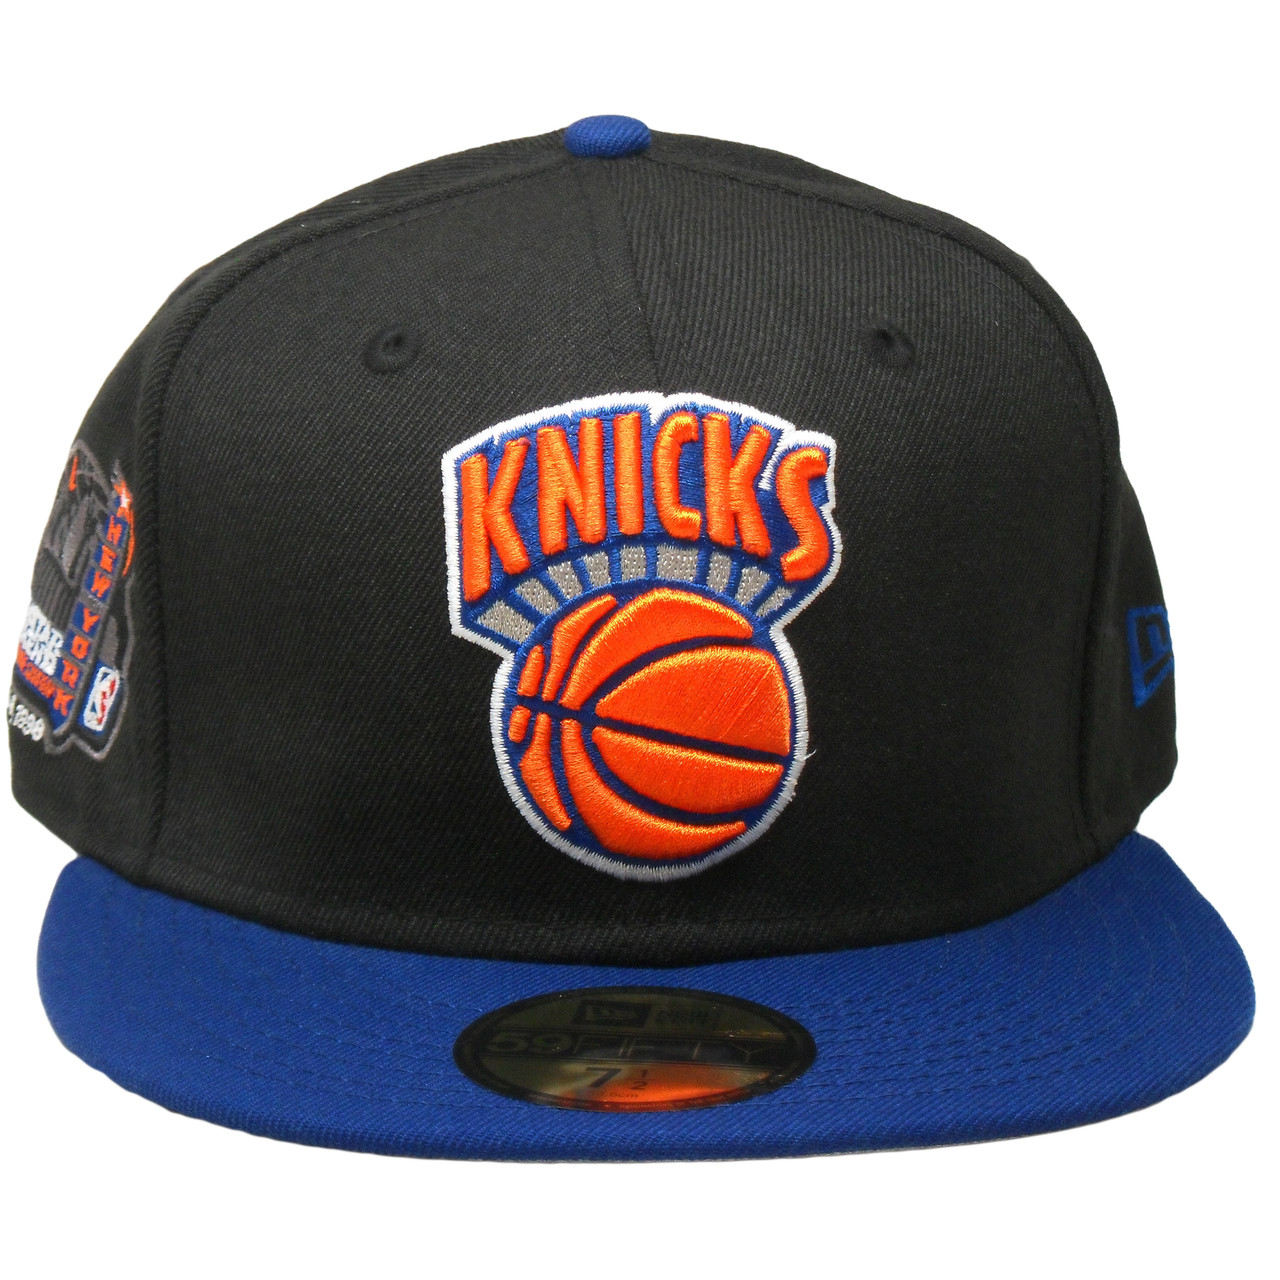 4716d013 New York Knicks New Era 59Fifty Custom Fitted - Black, Royal, Orange, White  - ECapsUnlimited.com